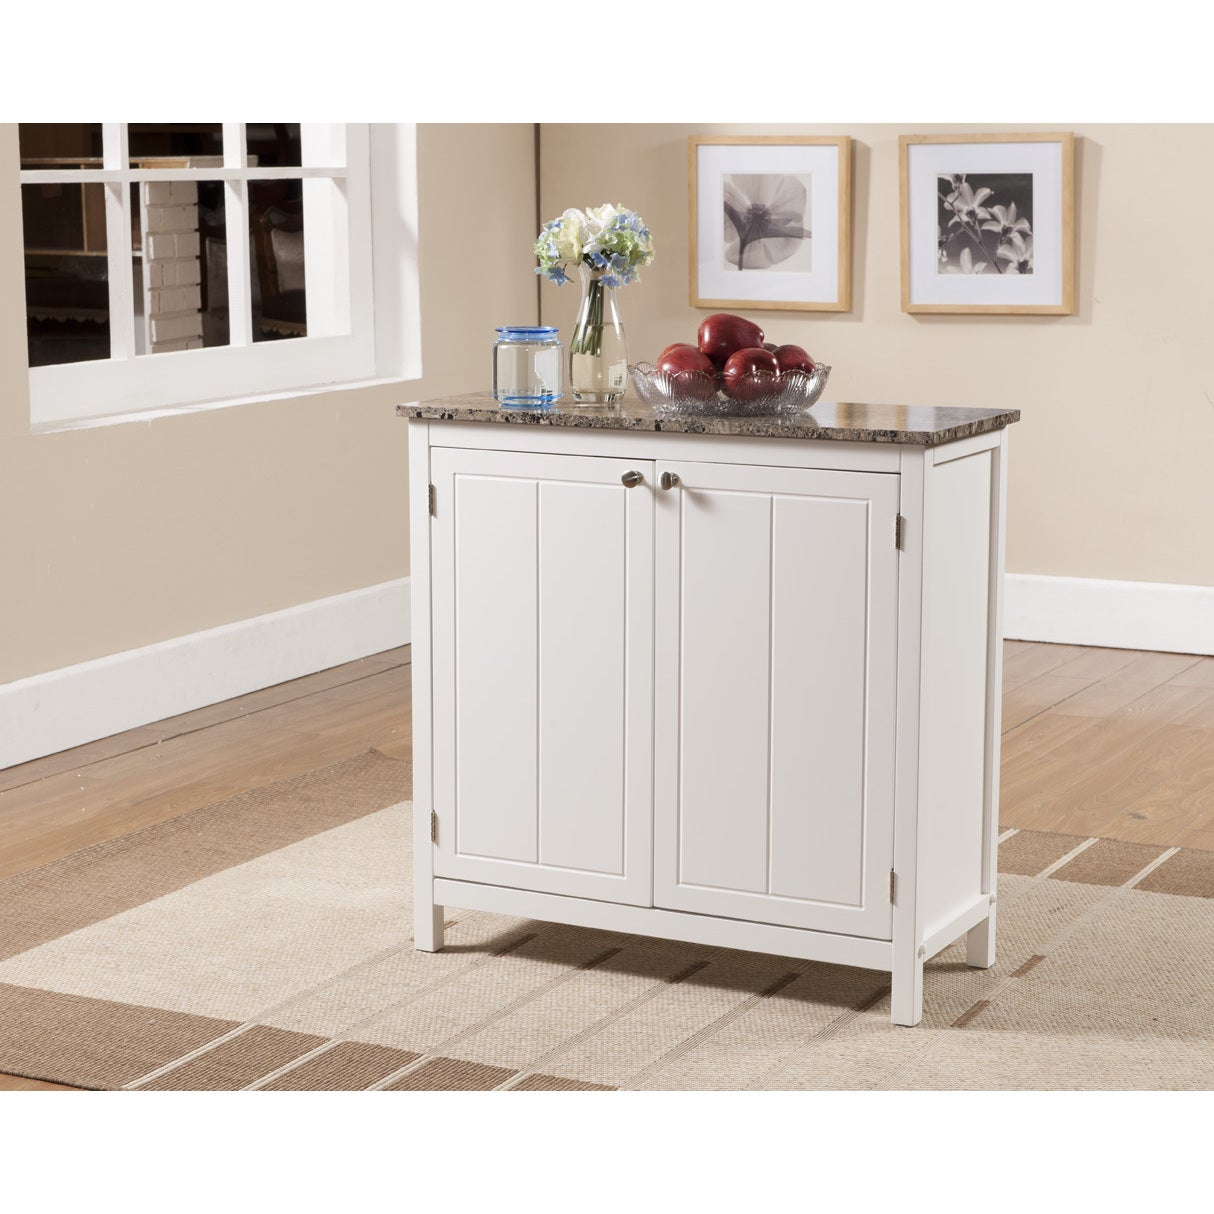 K & B White and Faux Marble Small Kitchen Island Cabinet